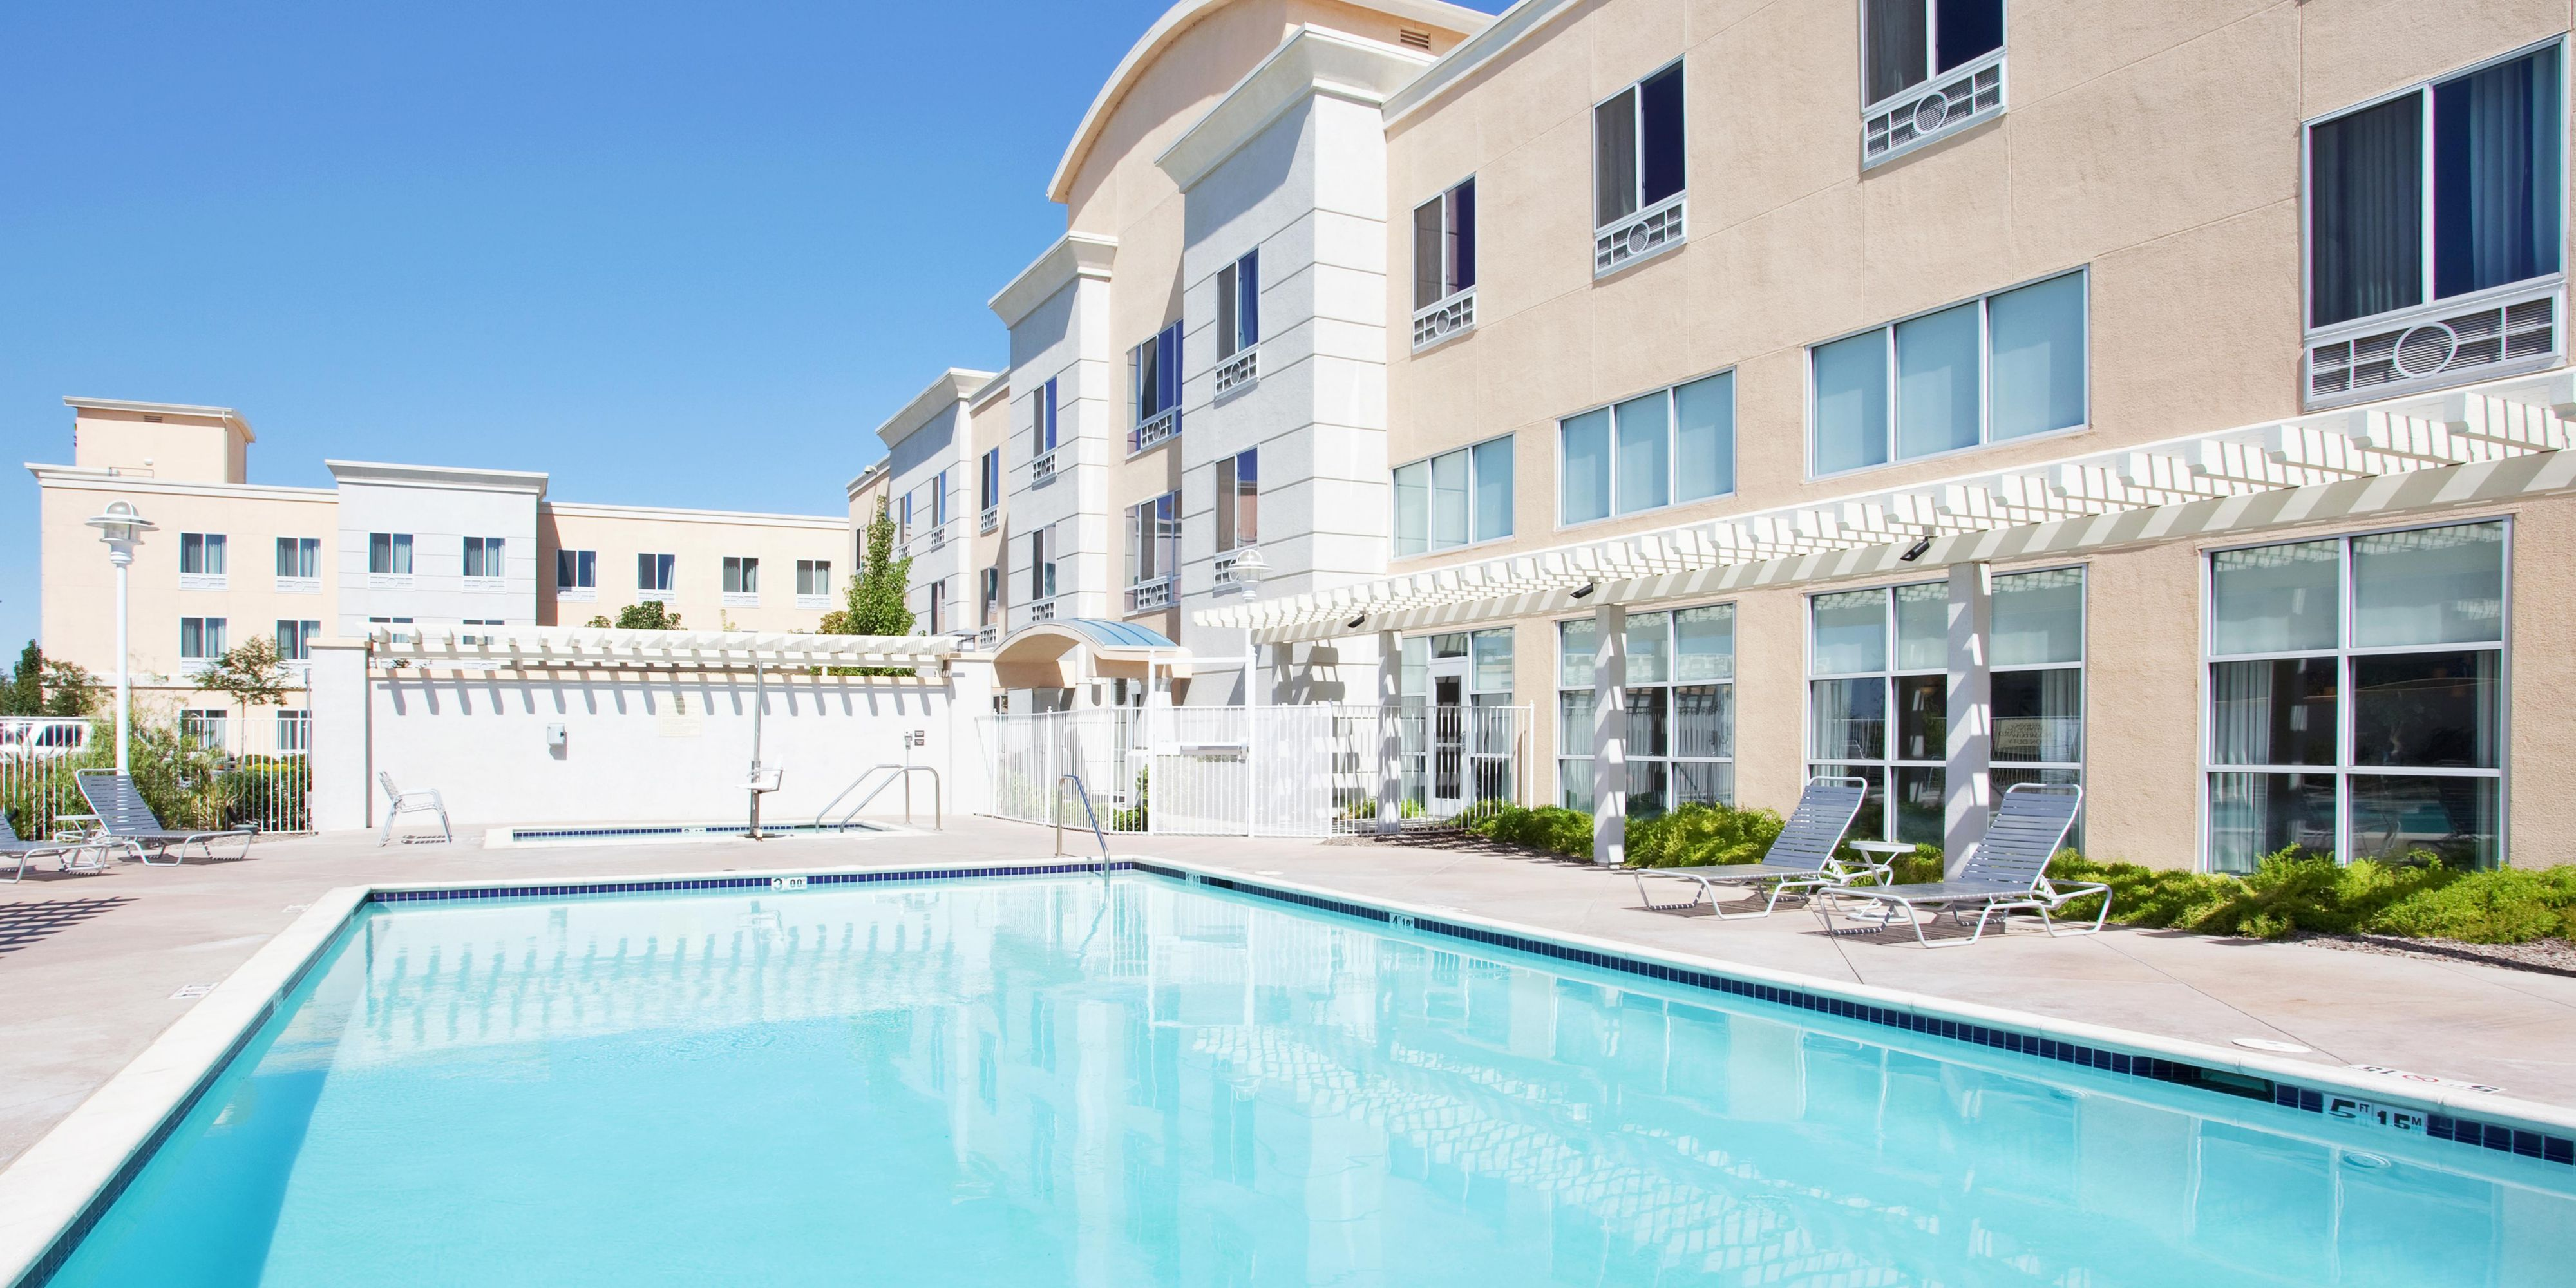 Holiday Inn Express & Suites Sacramento Airport Natomas Hotel by IHG